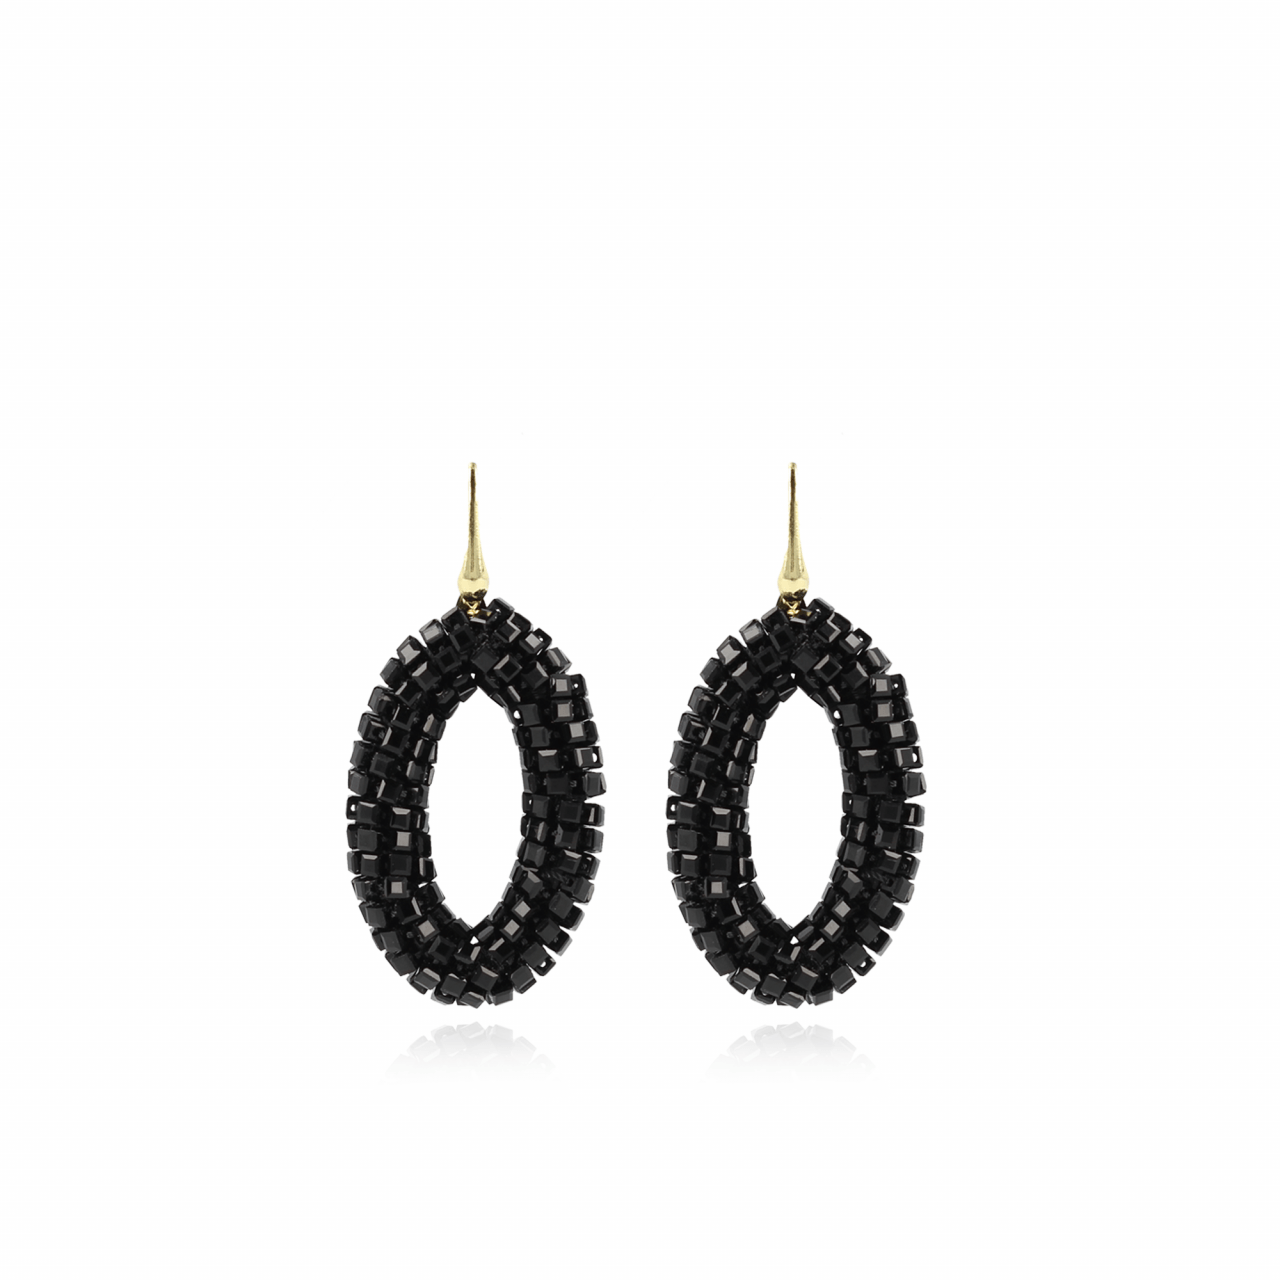 Black glassberry oval M earrings